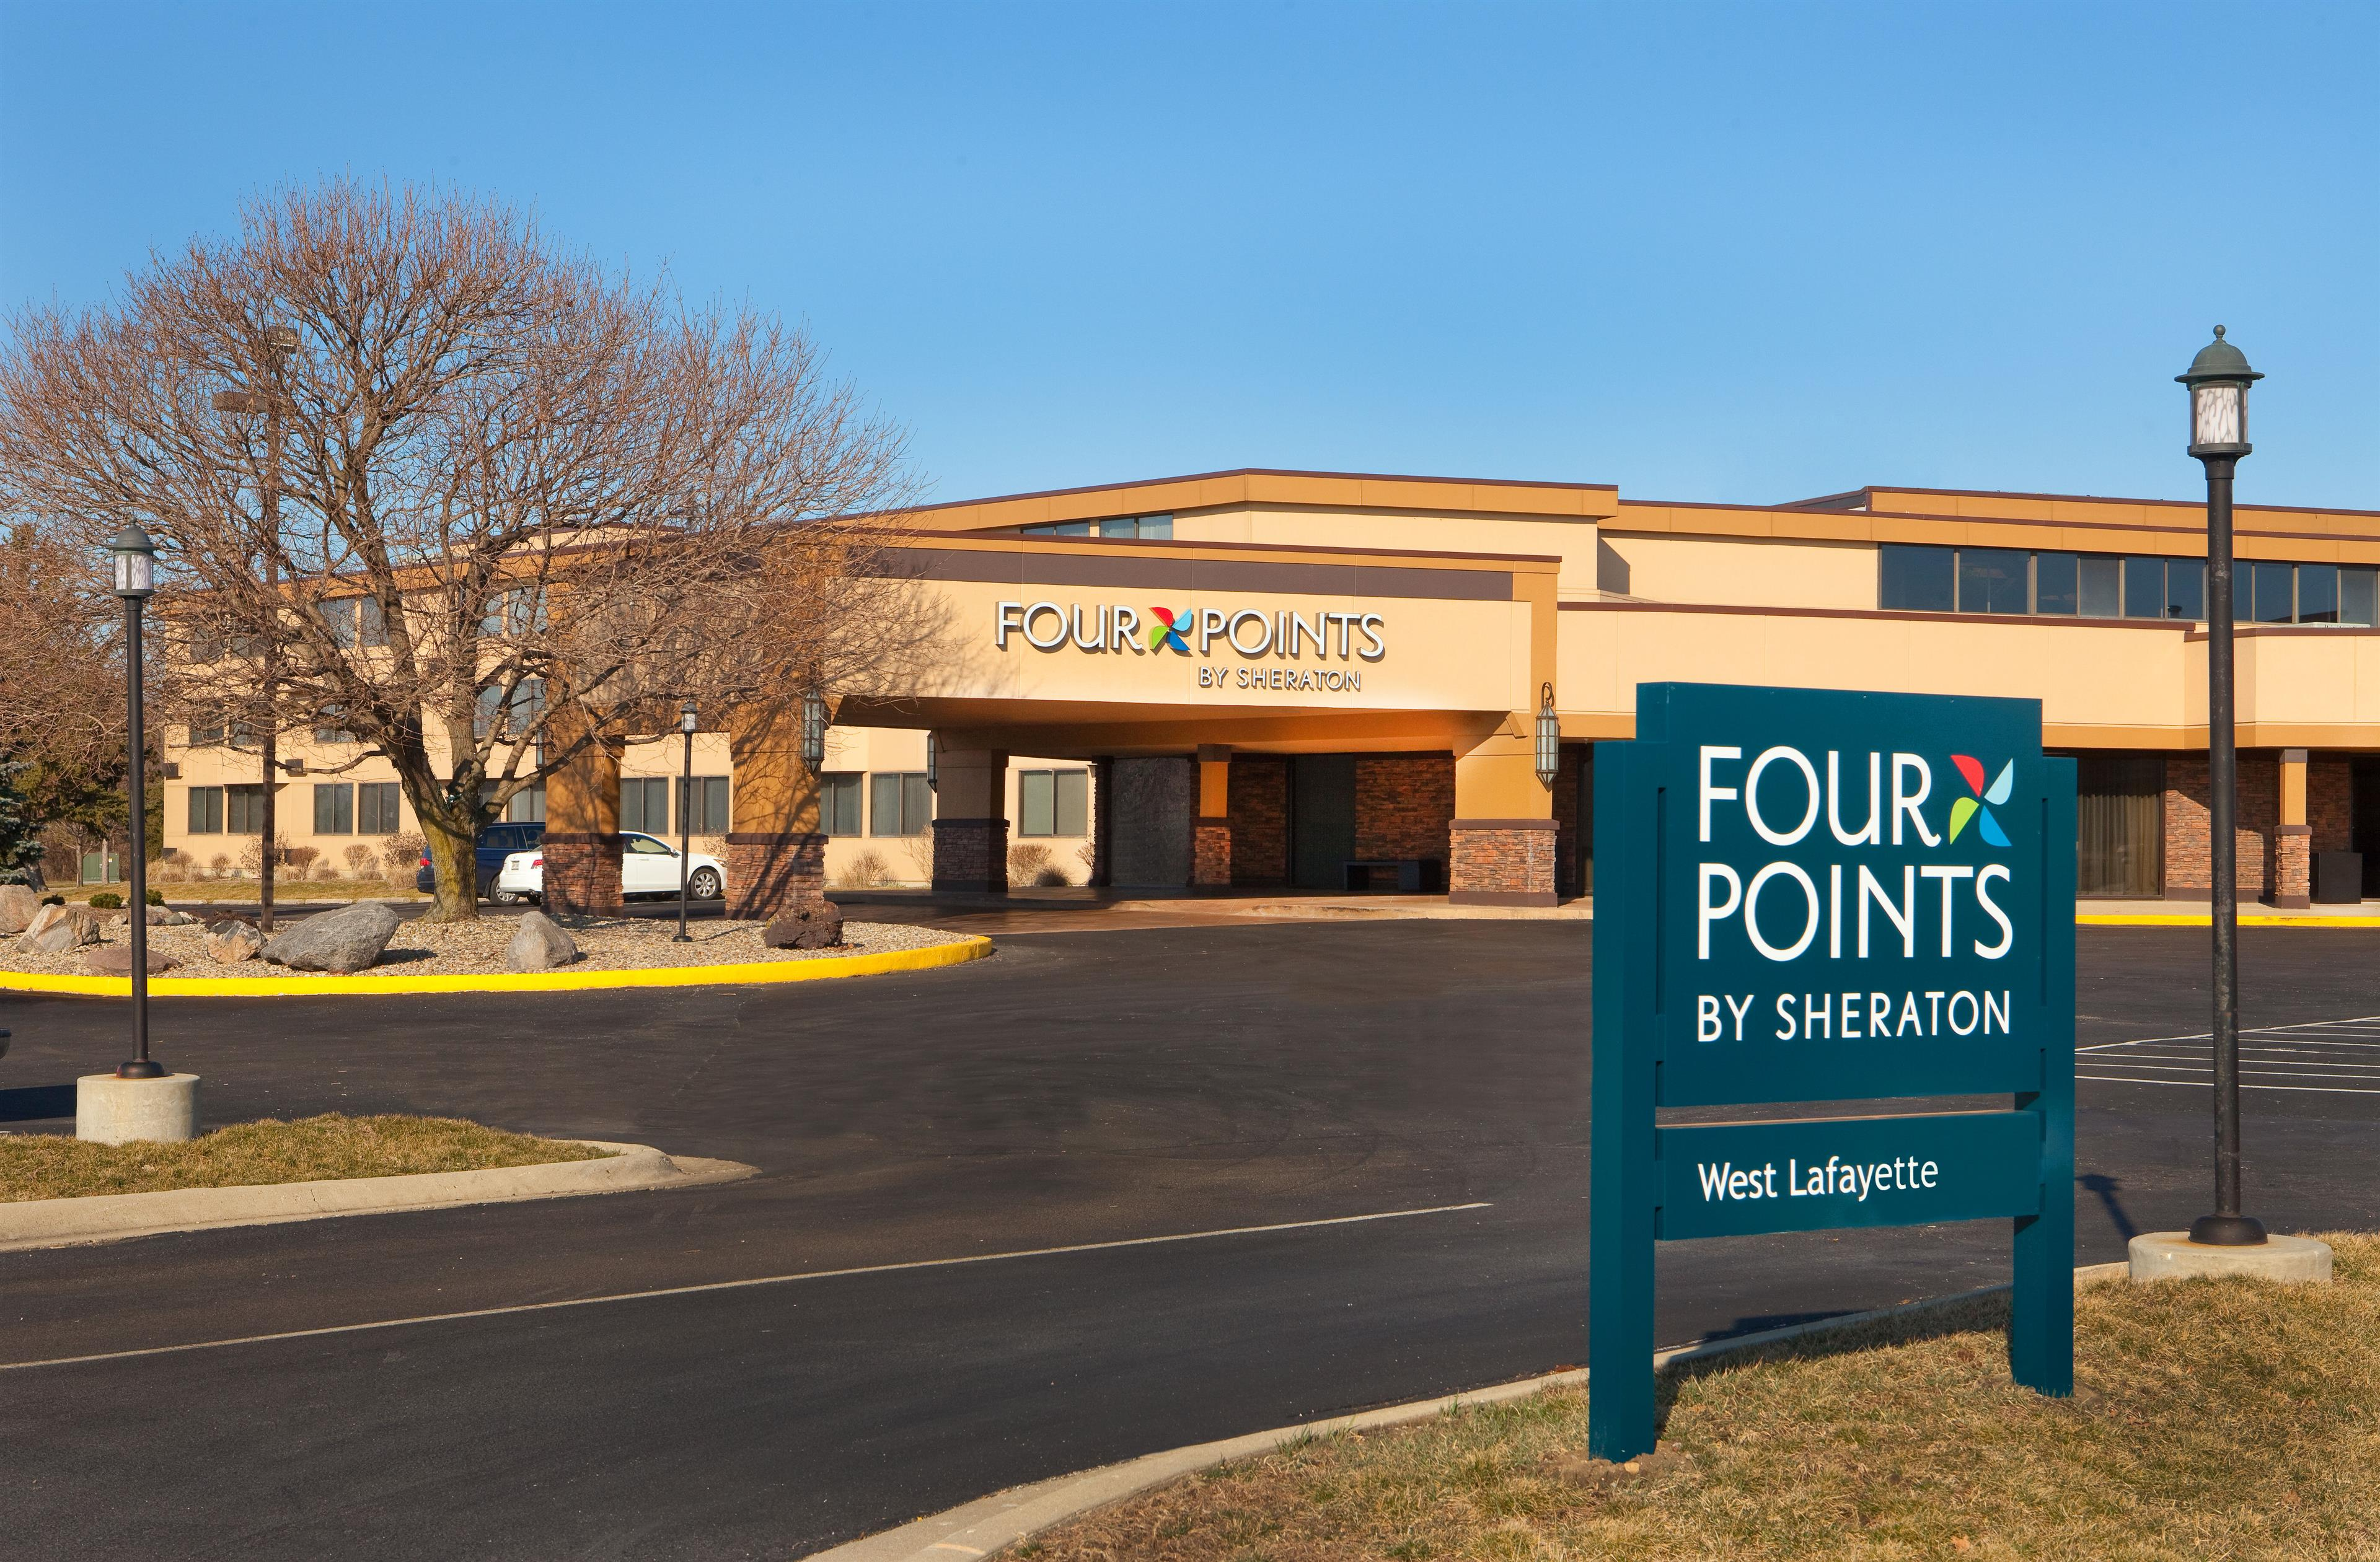 Four Points by Sheraton West Lafayette image 1